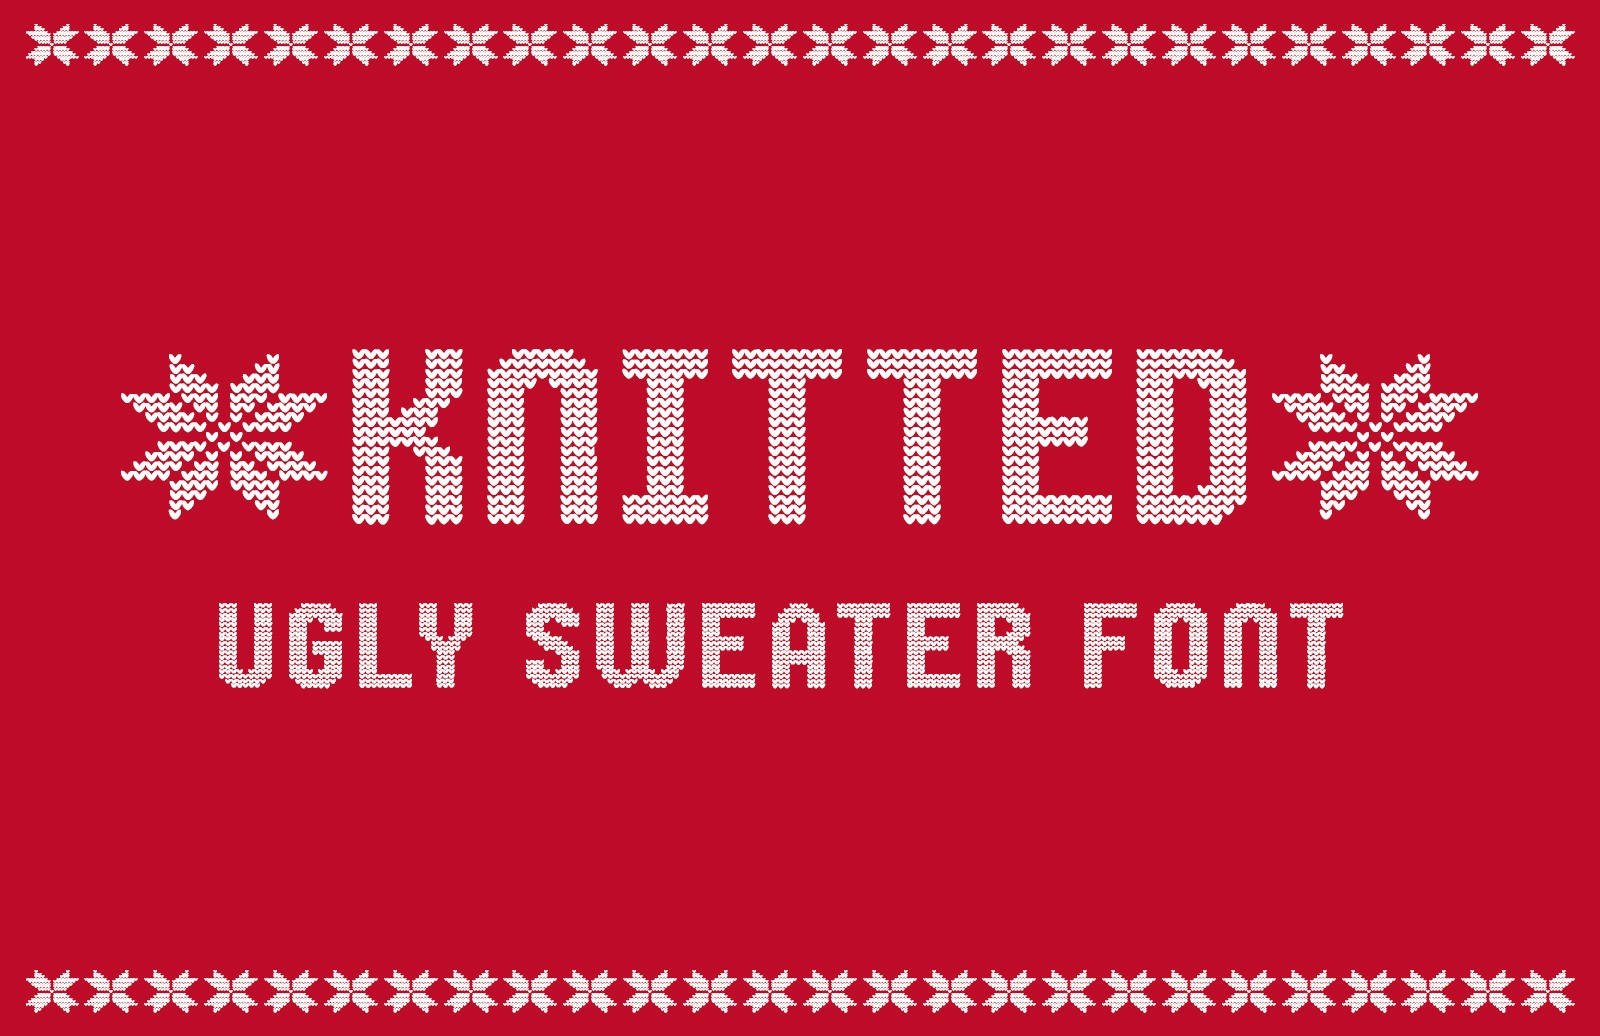 Knitted Ugly Sweater Font Preview 1